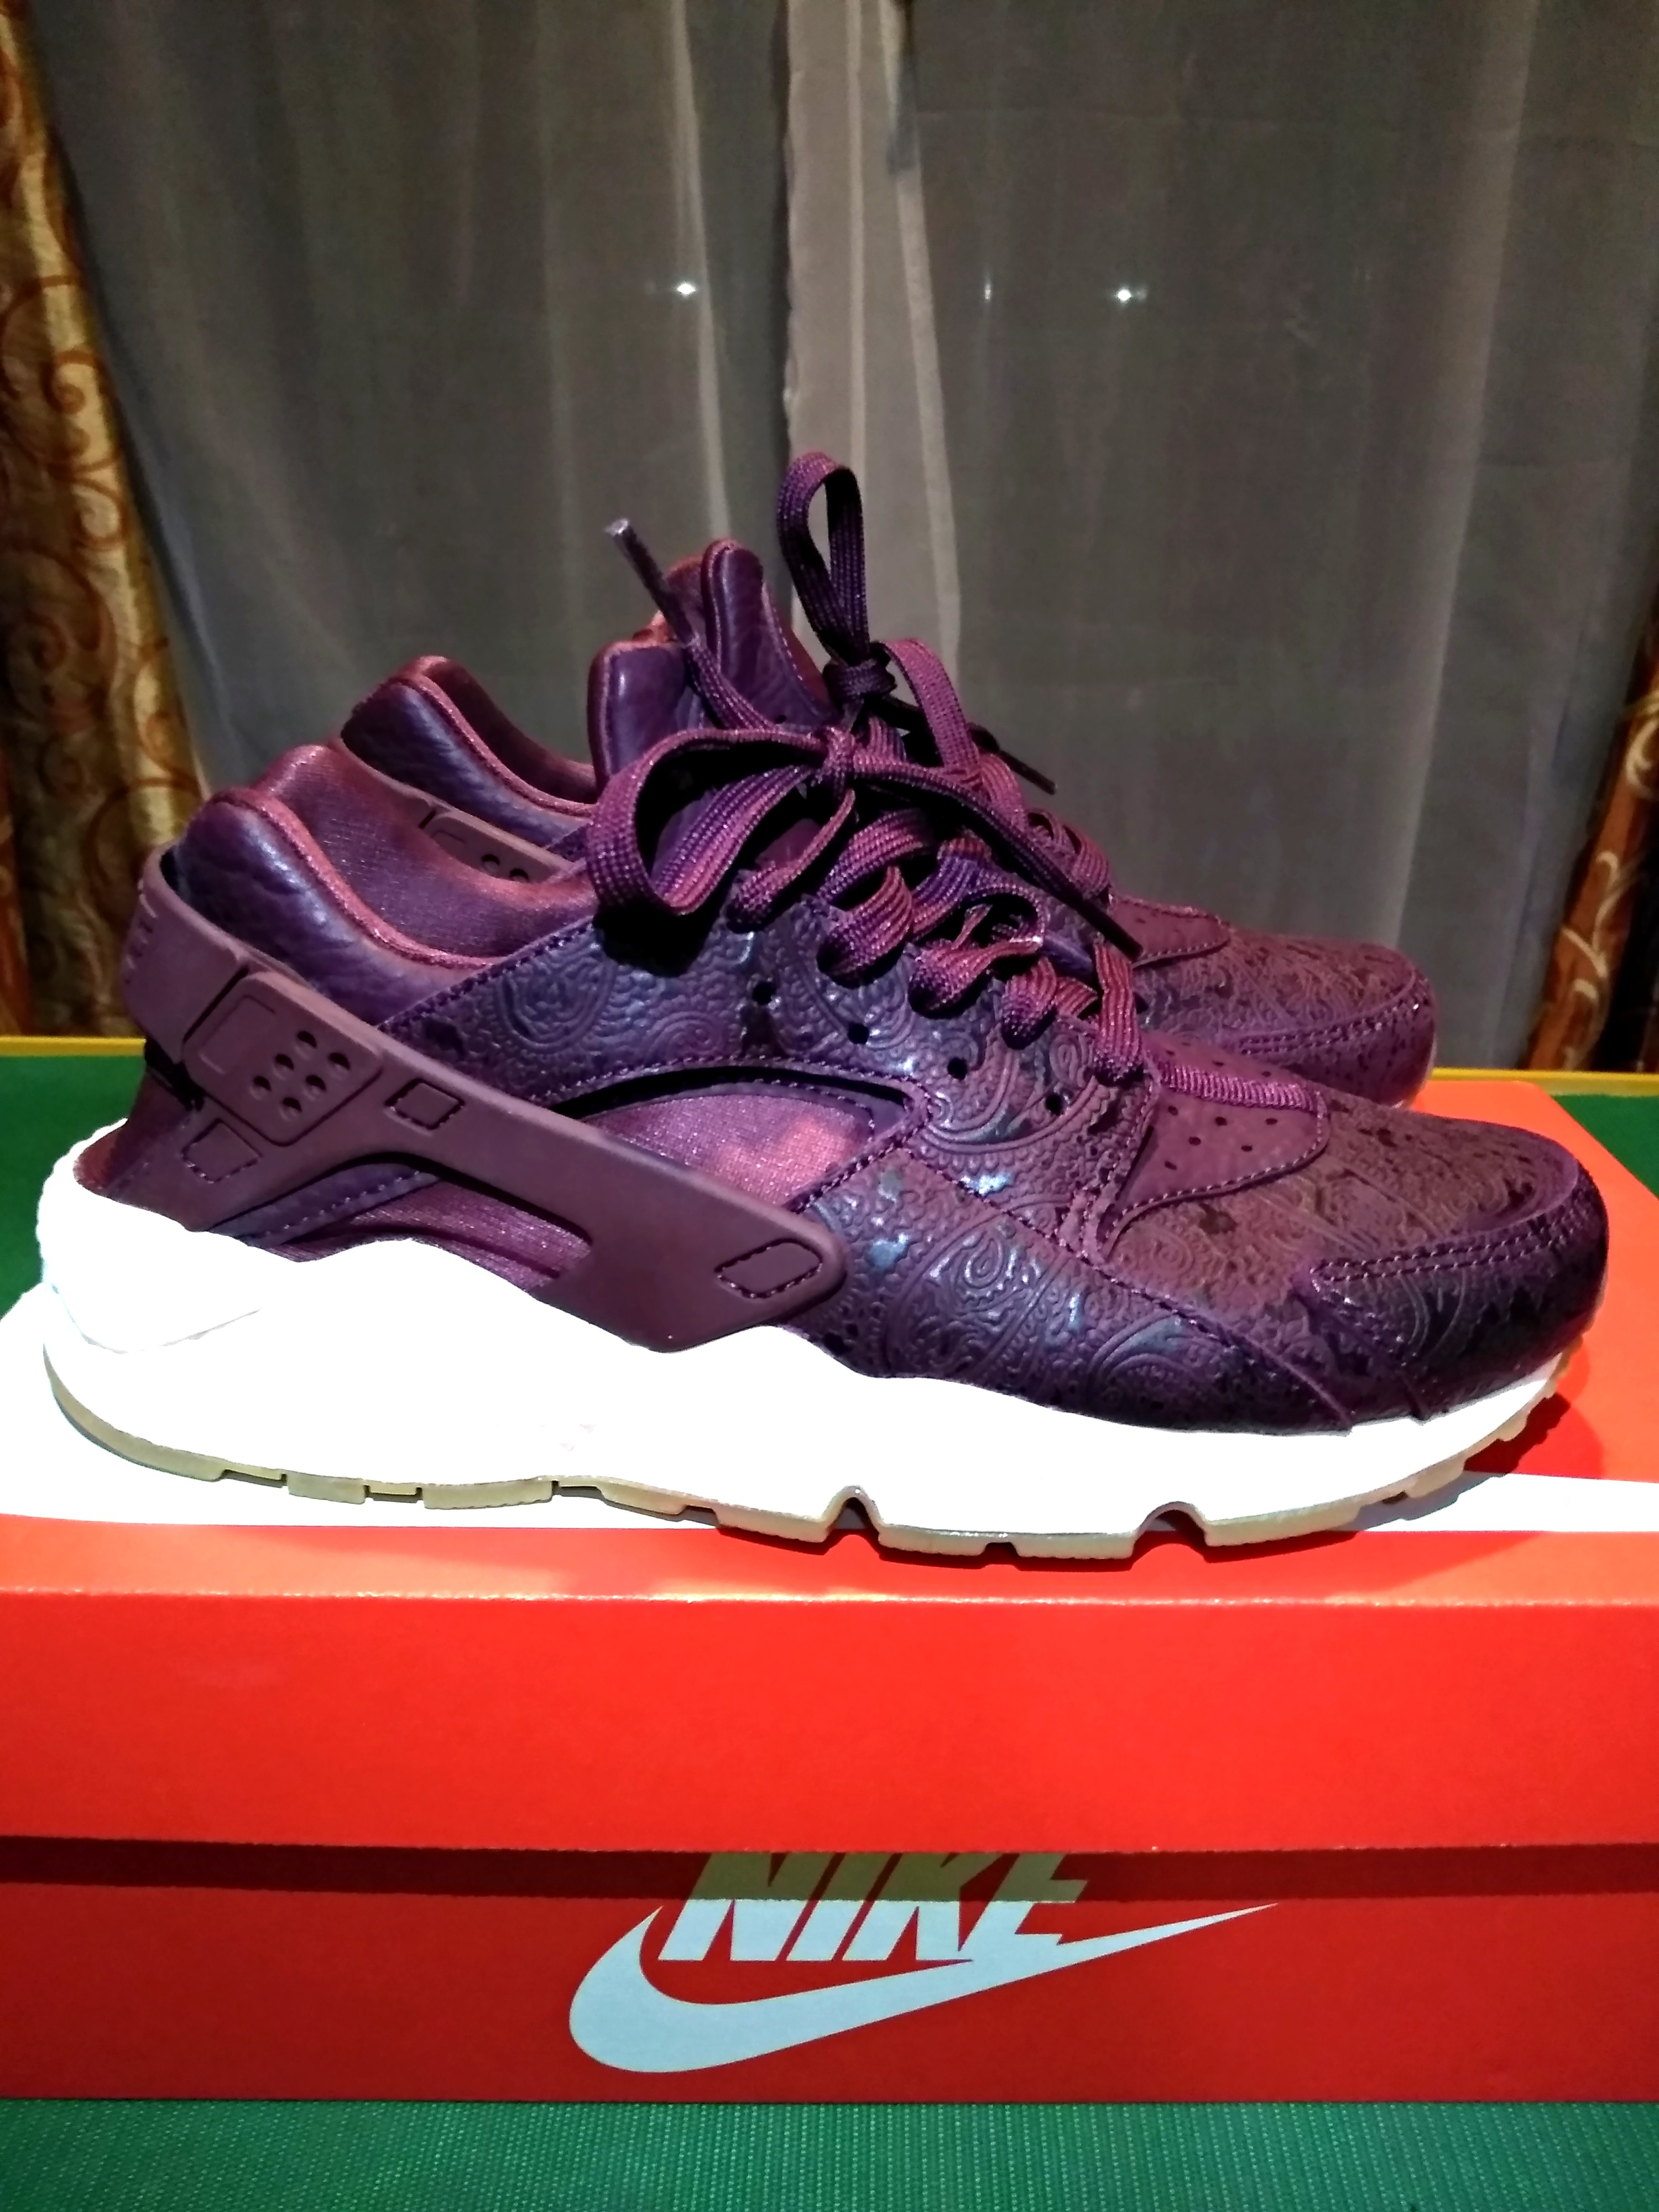 online store 0a601 06b36 Nike Air Huarache, Women s Fashion, Shoes, Sneakers on Carousell